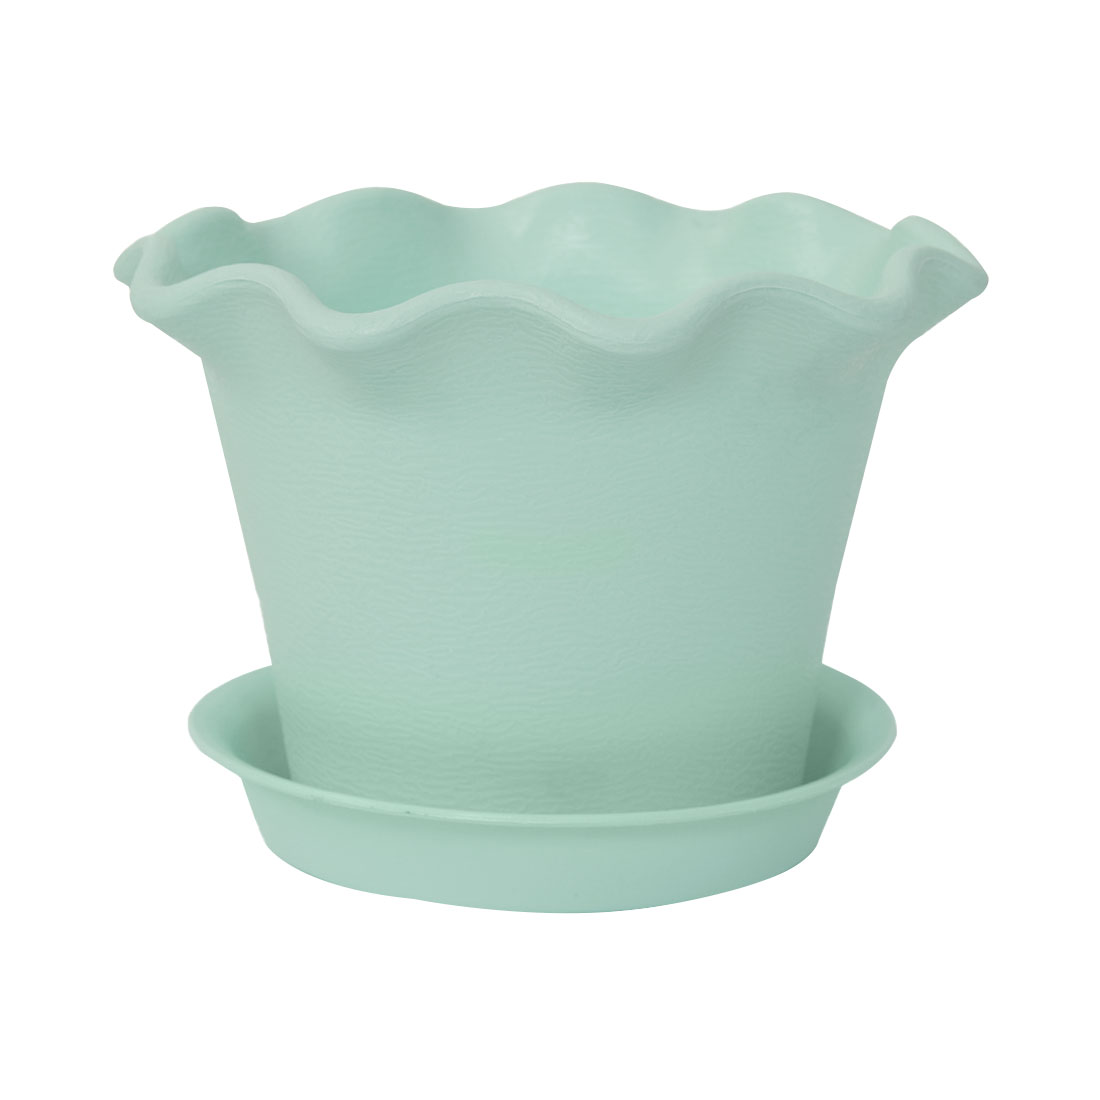 Home Office Garden Plastic Floral Shaped Plant Flower Pot Turquoise w Tray